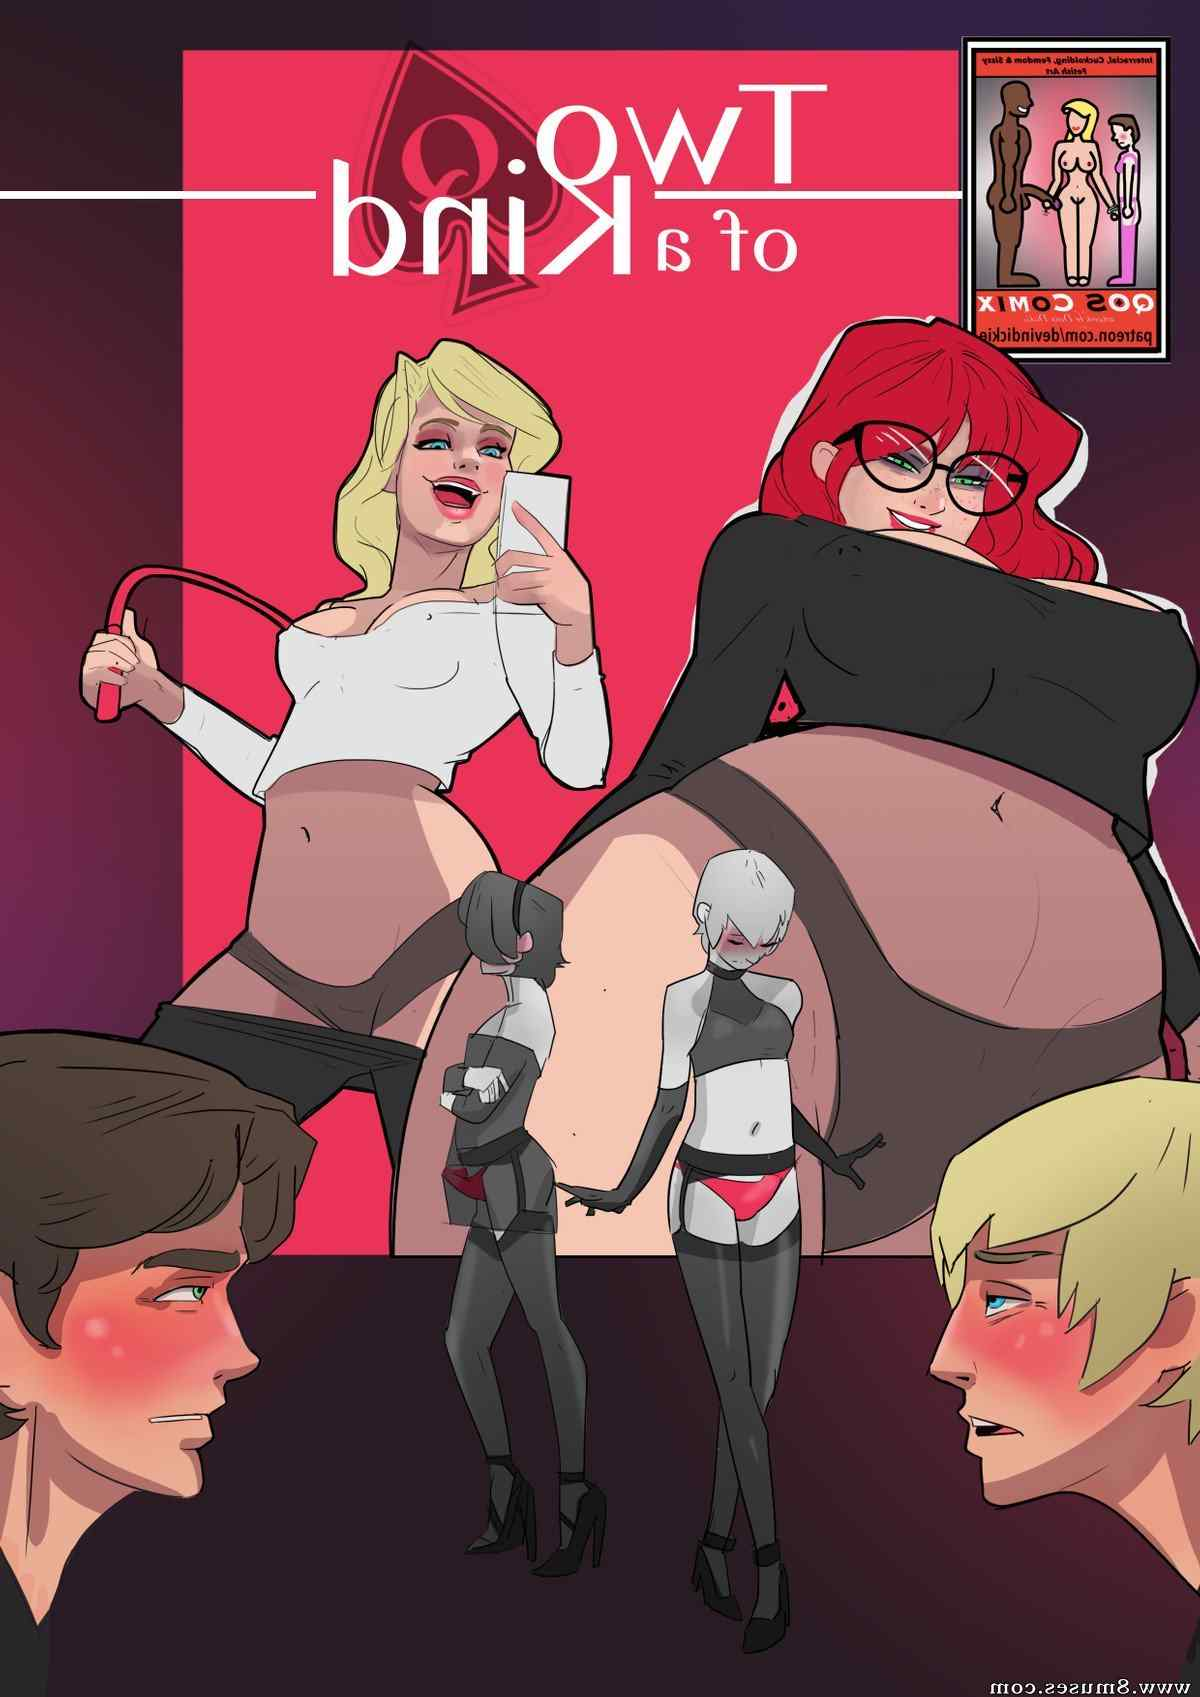 Devin-Dickie-Comics/Two-of-a-Kind Two_of_a_Kind__8muses_-_Sex_and_Porn_Comics.jpg